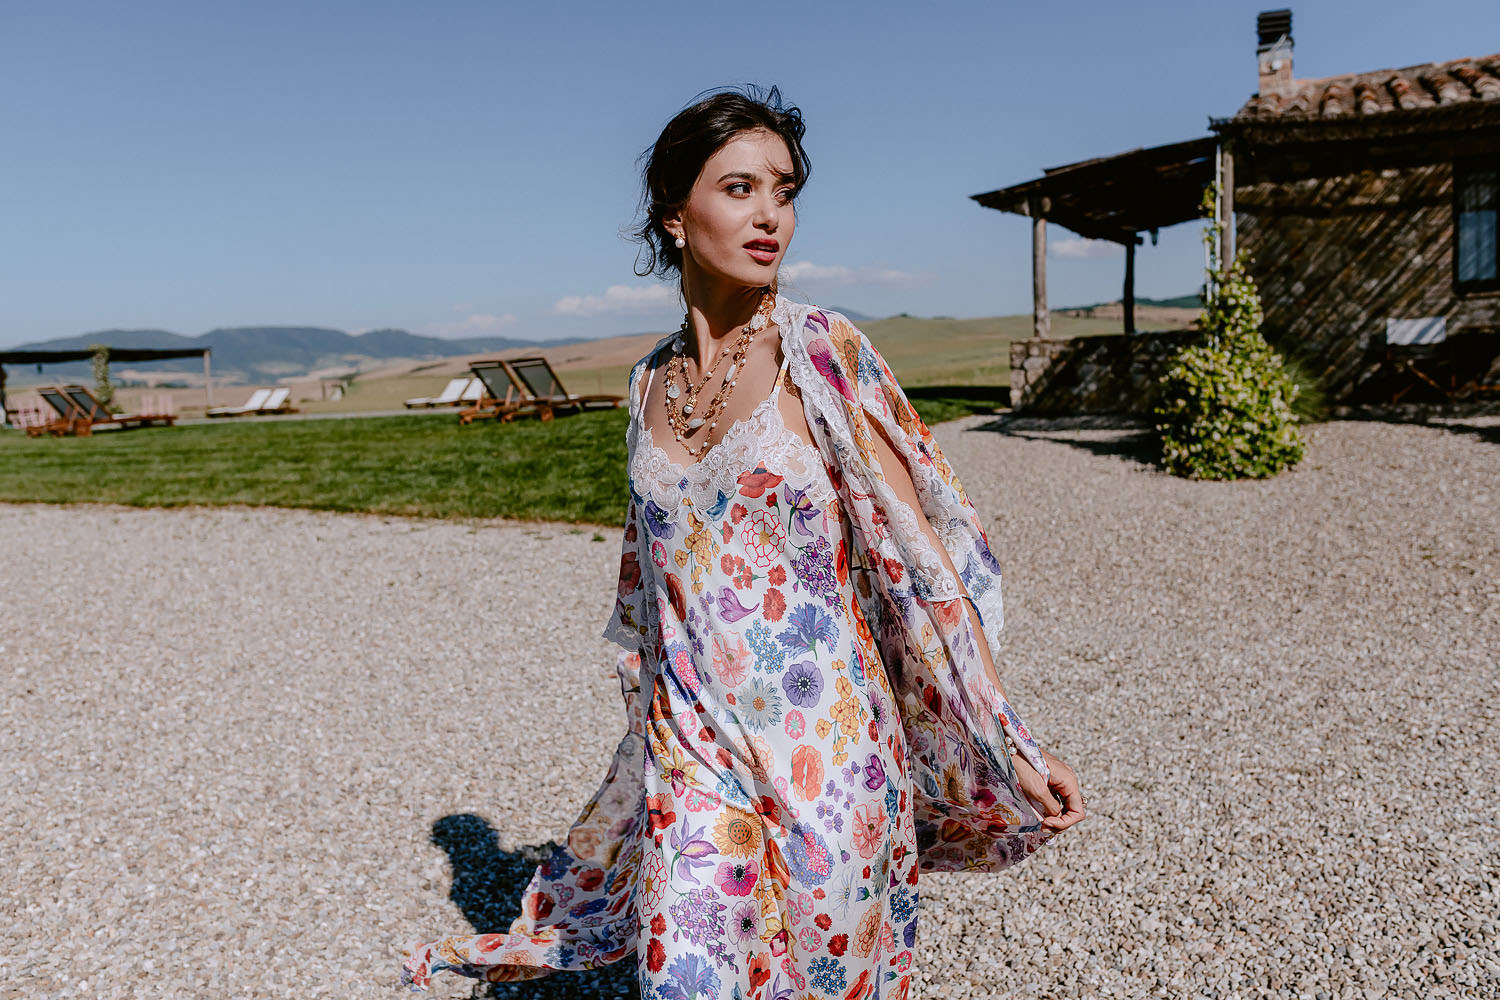 editorial Wedding Inspiration Tuscan Rolling Hills bride in petticoat and dressing gown outdoor fashion vibe